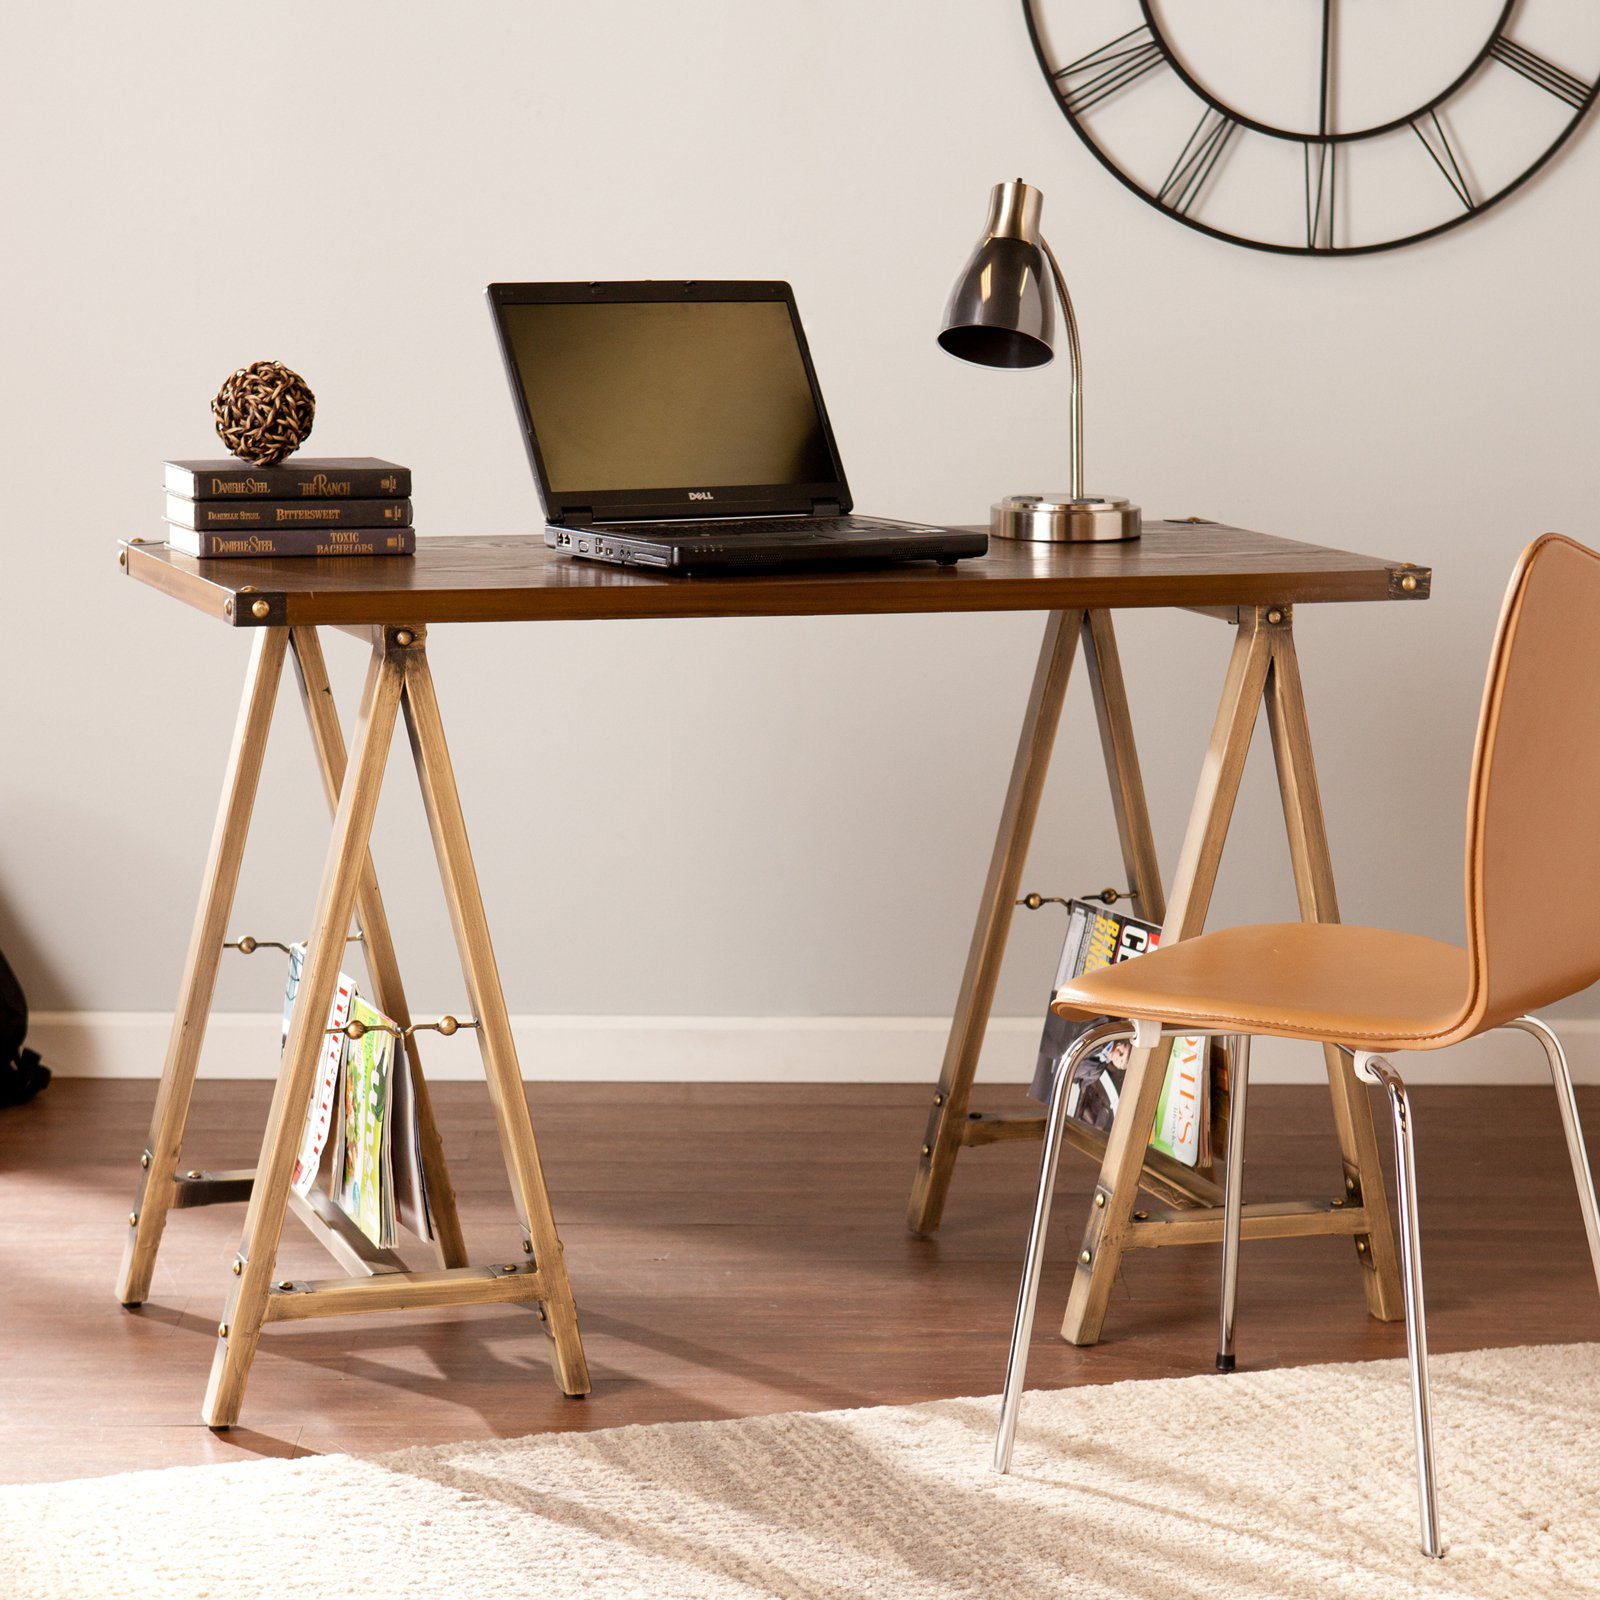 Southern Enterprises Downing Sawhorse Writing Desk - Antique Bronze / Weathered Oak